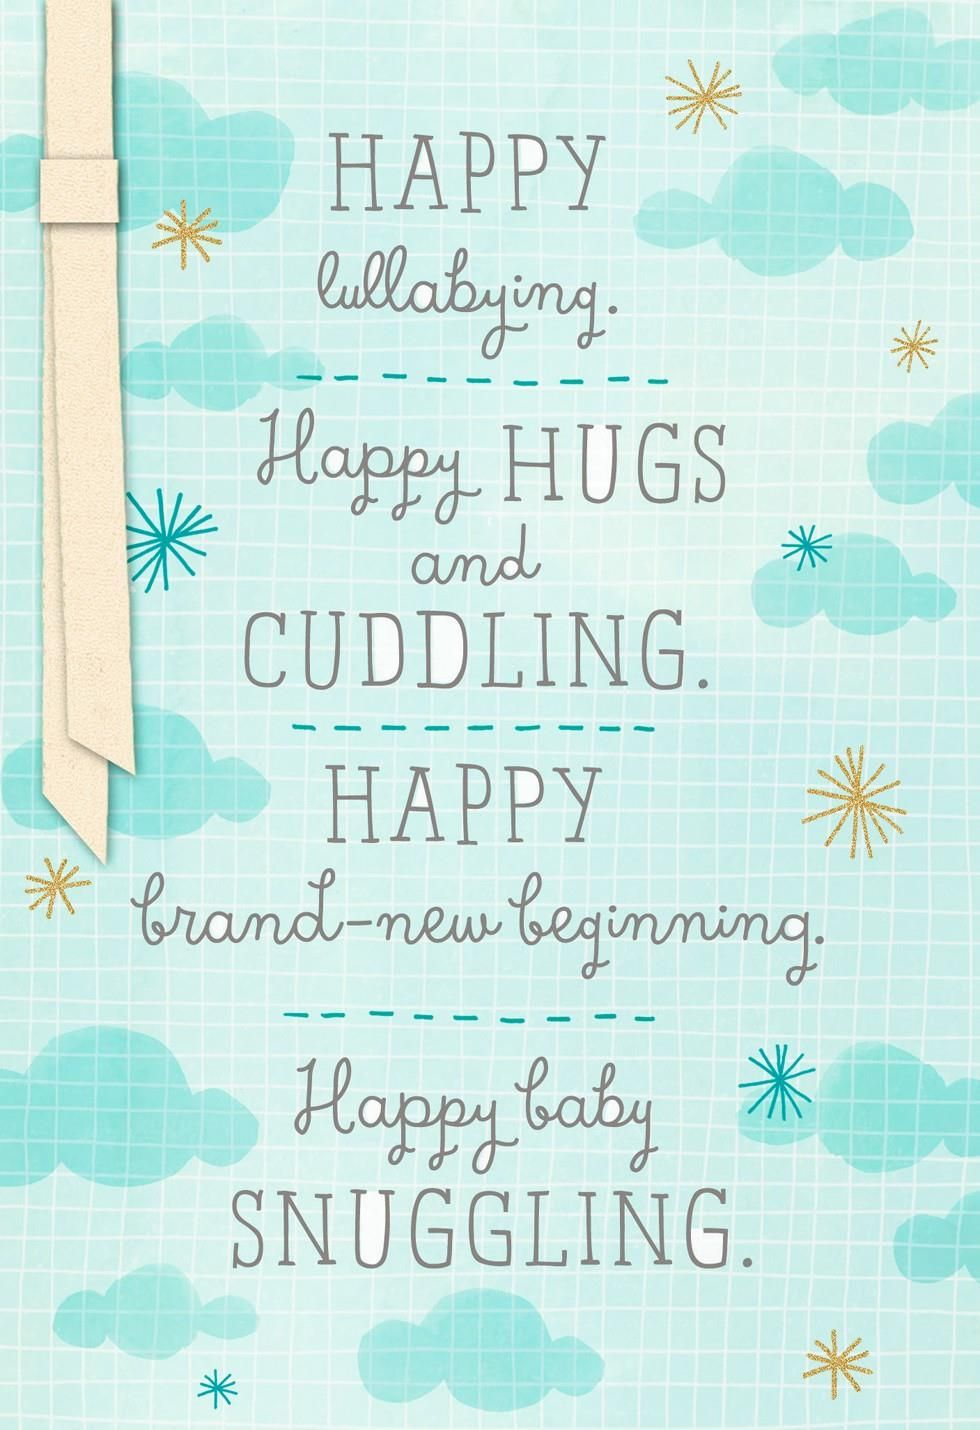 Share Warm Wishes To New Parents And Welcome Their New